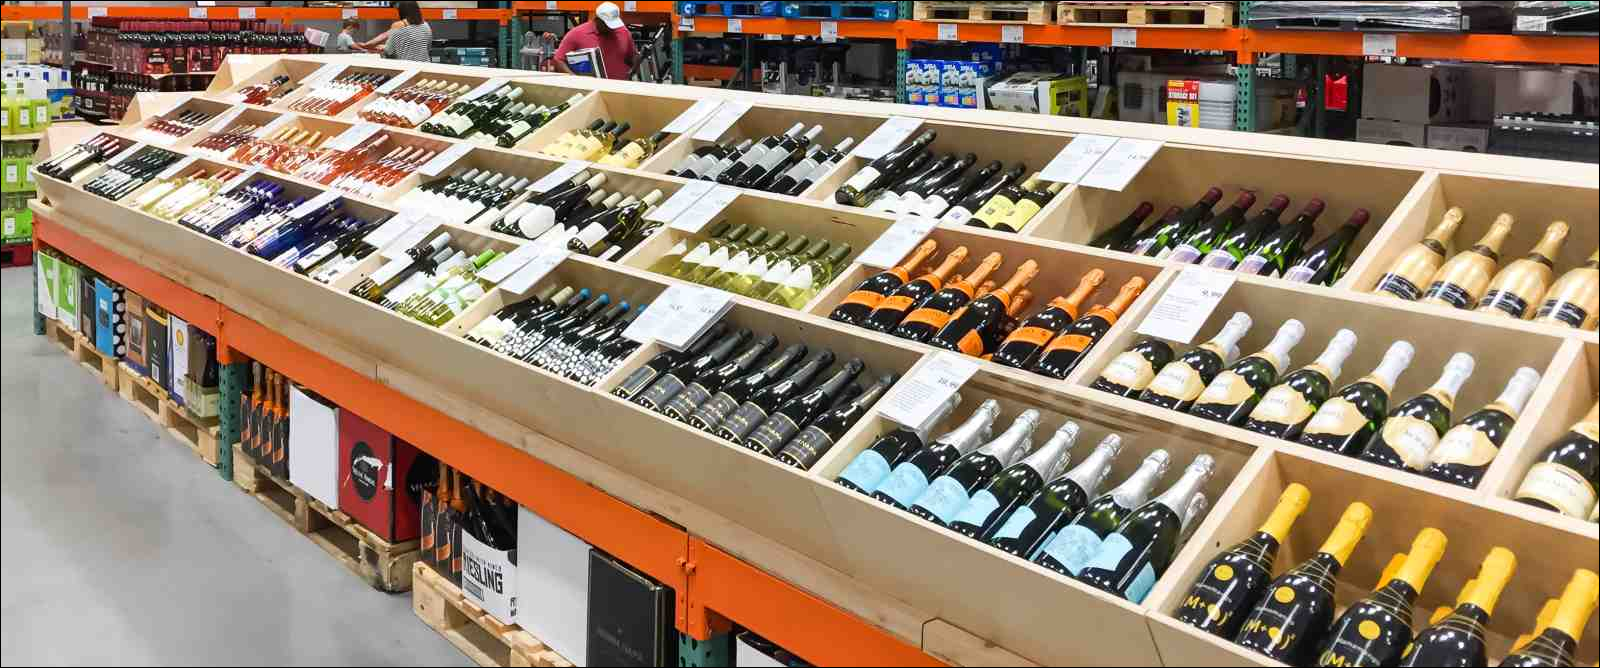 isle of bottles in wine section of Costco store